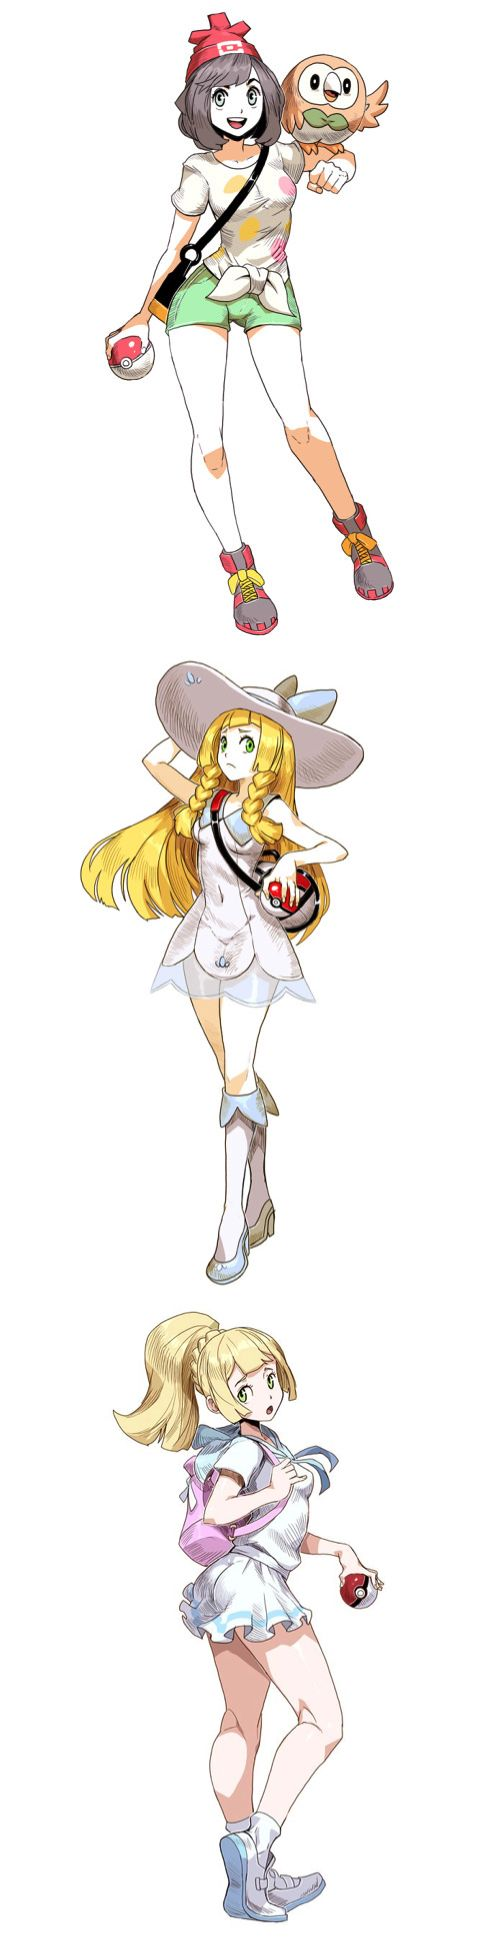 Pokemon trainers from sun and moon... Pokemon girls